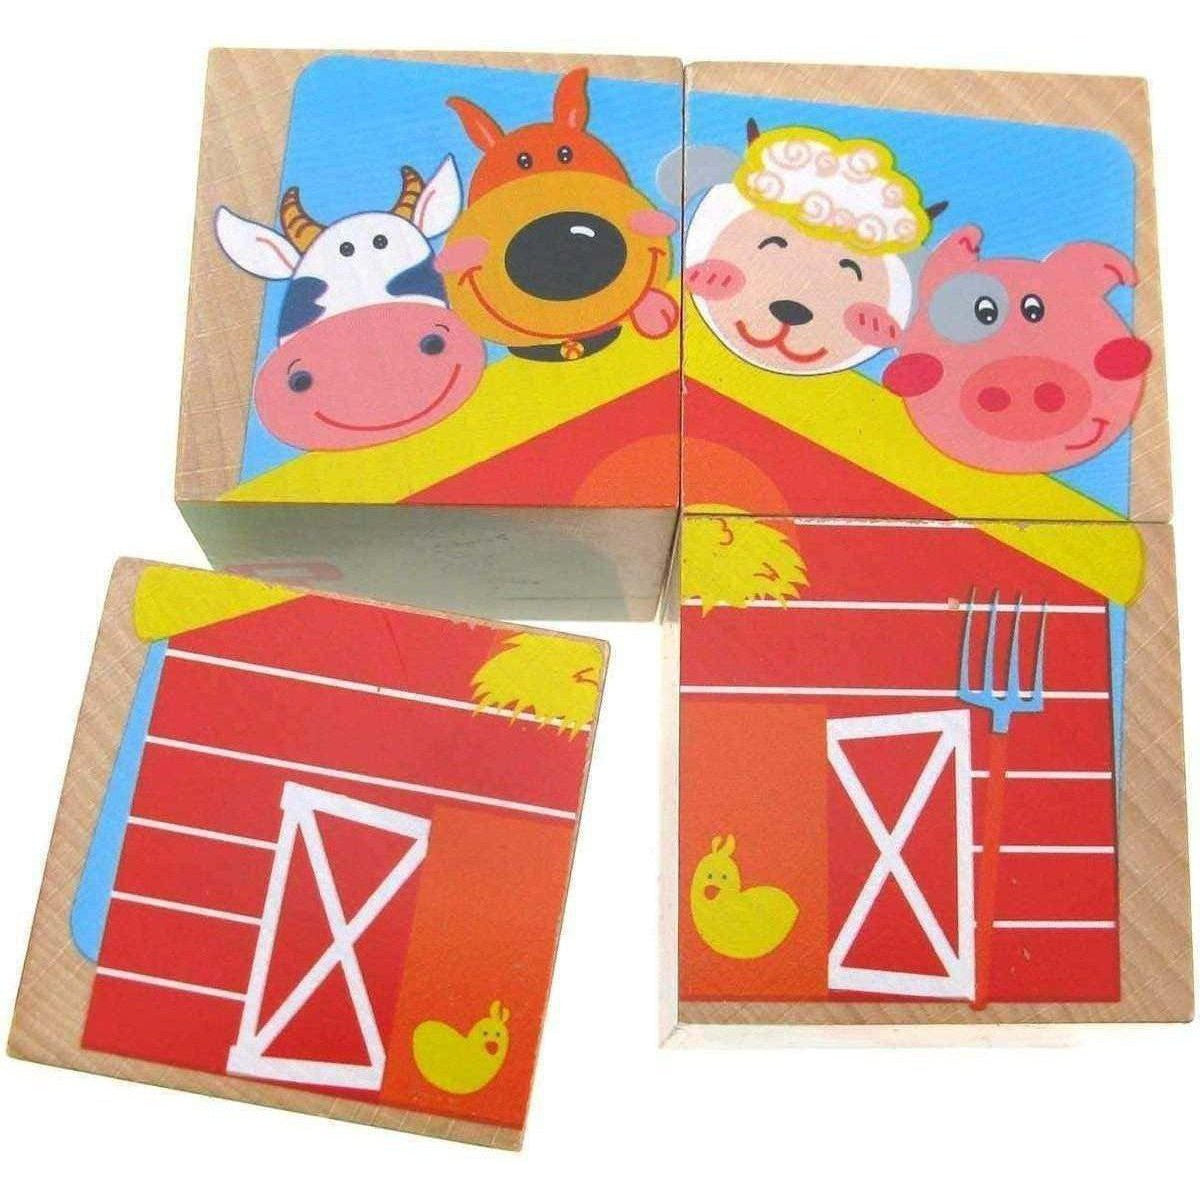 Wooden Cube Farm Puzzle 4Pcs